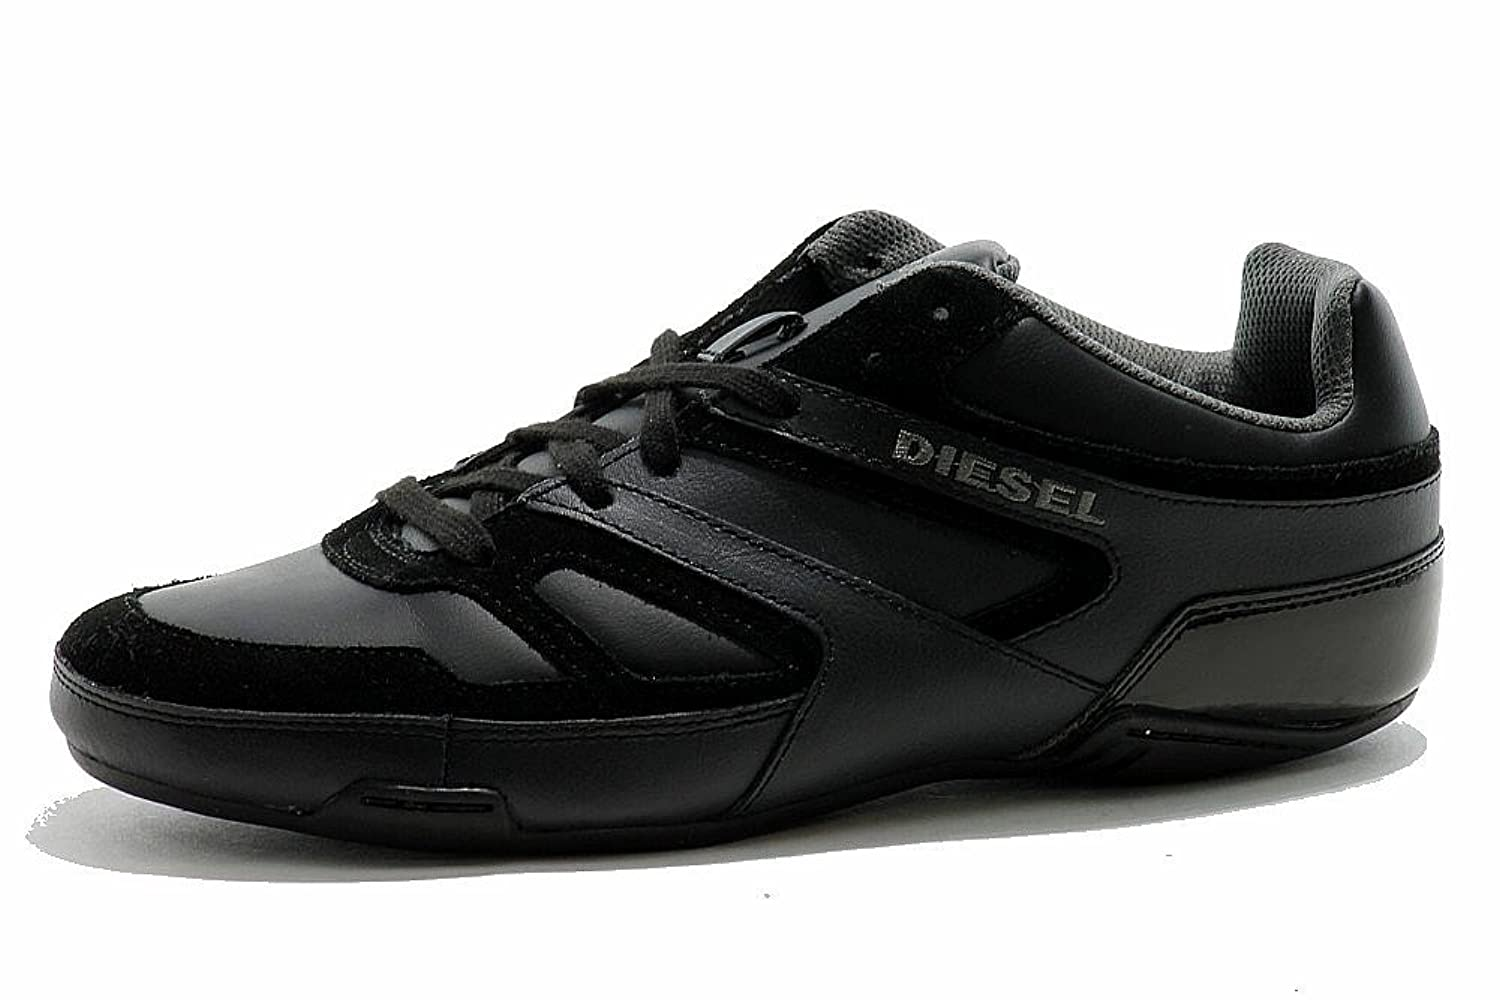 Men's Diesel Smatch S Fashion Sneaker Black Suede Shoes